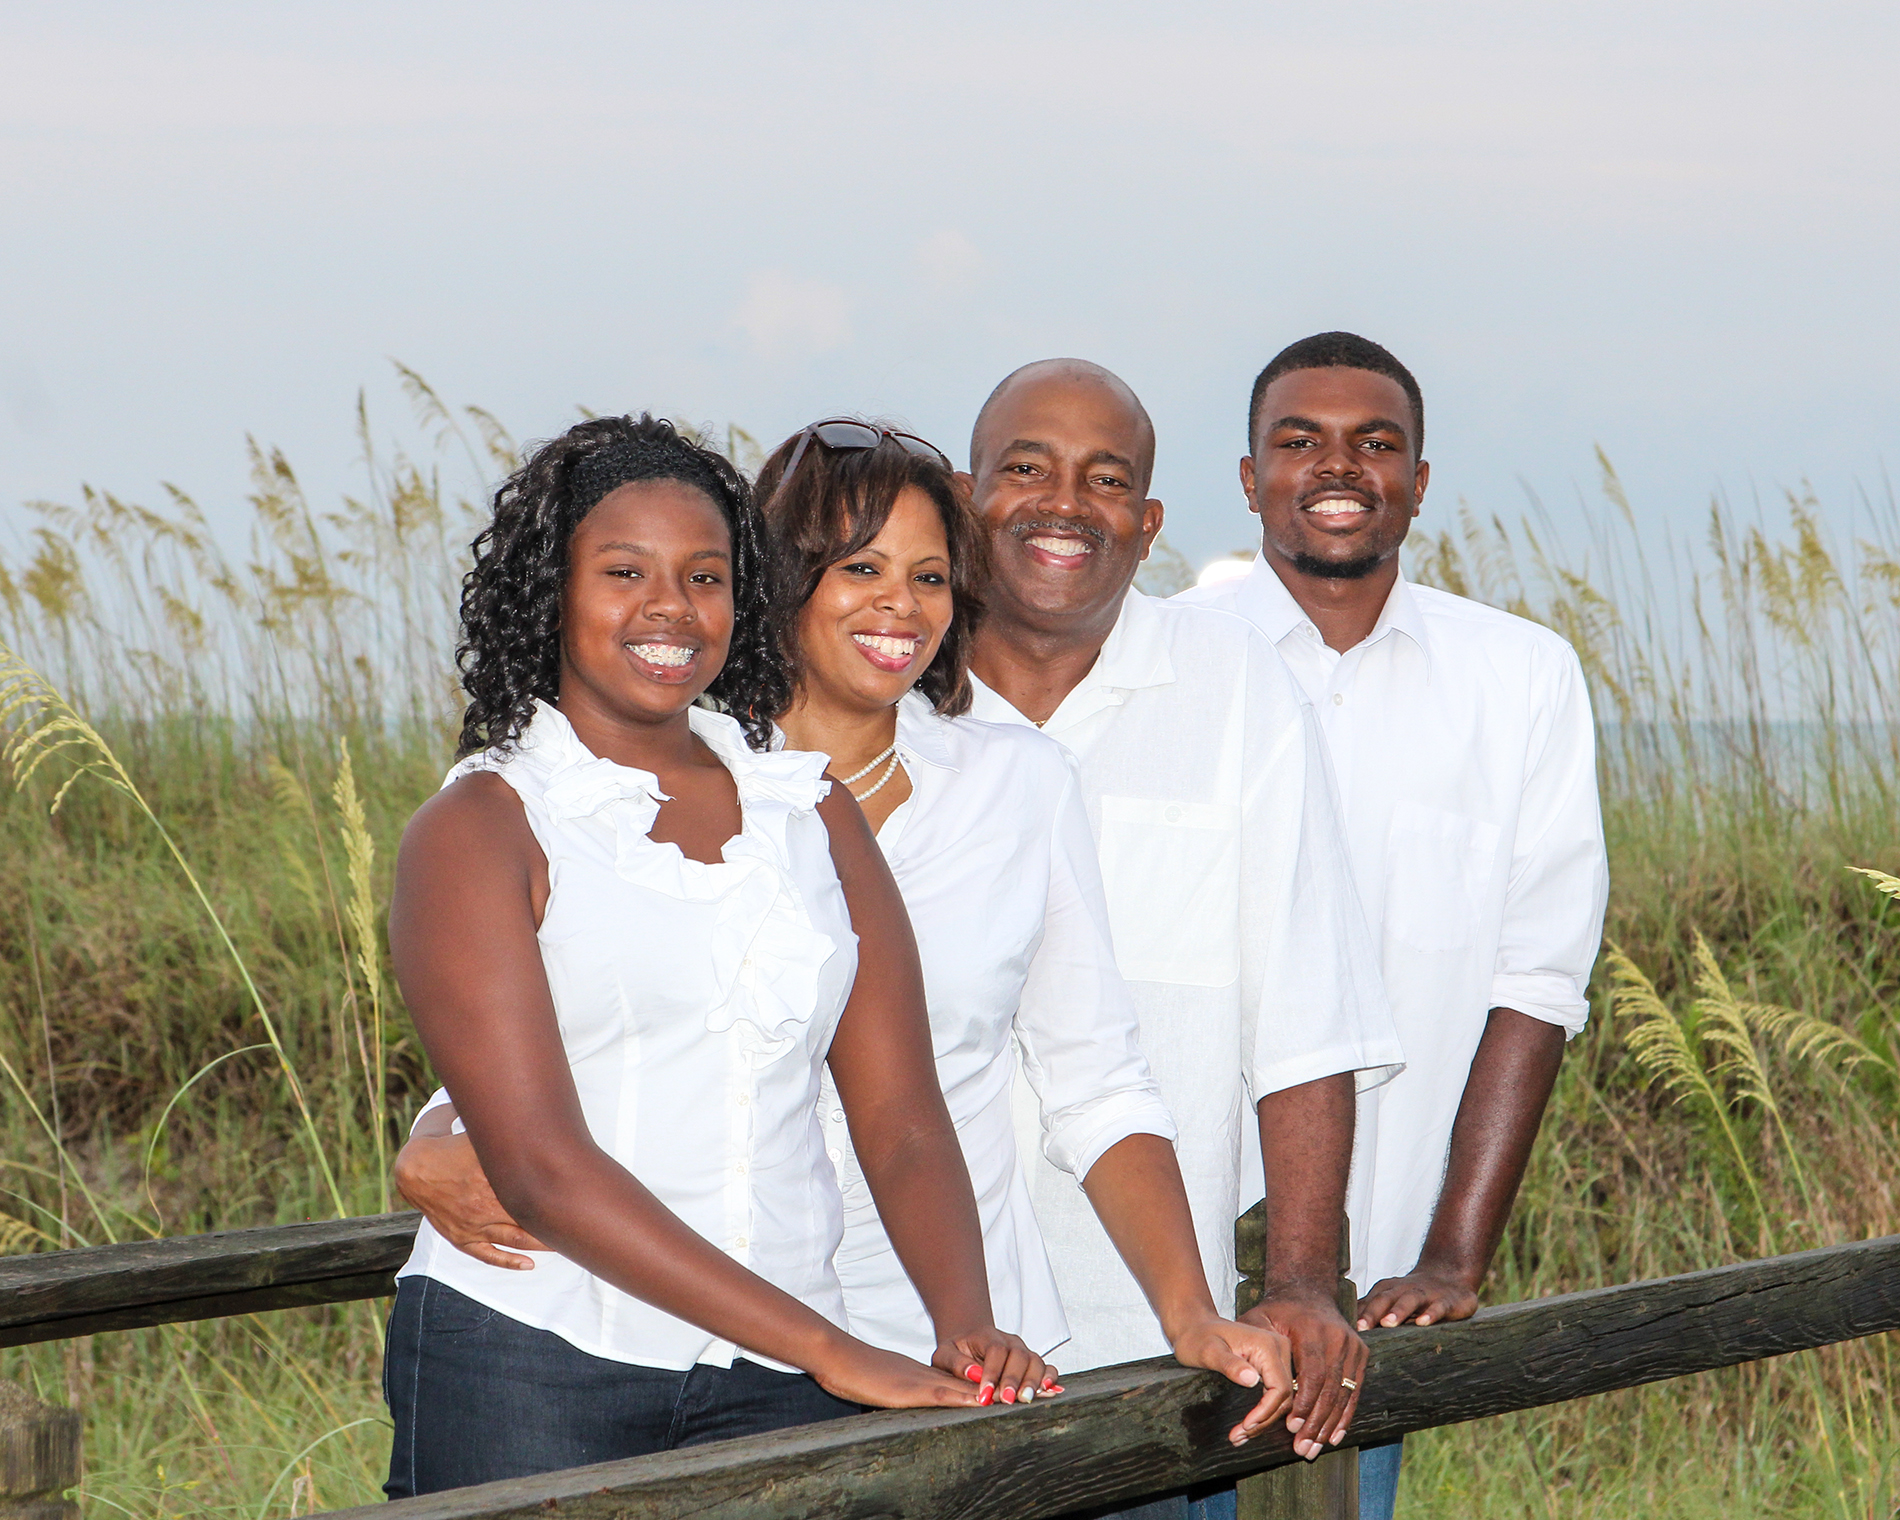 Coyne-Beasley (second from right) with her daughter Kayla, husband Darryl, and son Keith at North Myrtle Beach.